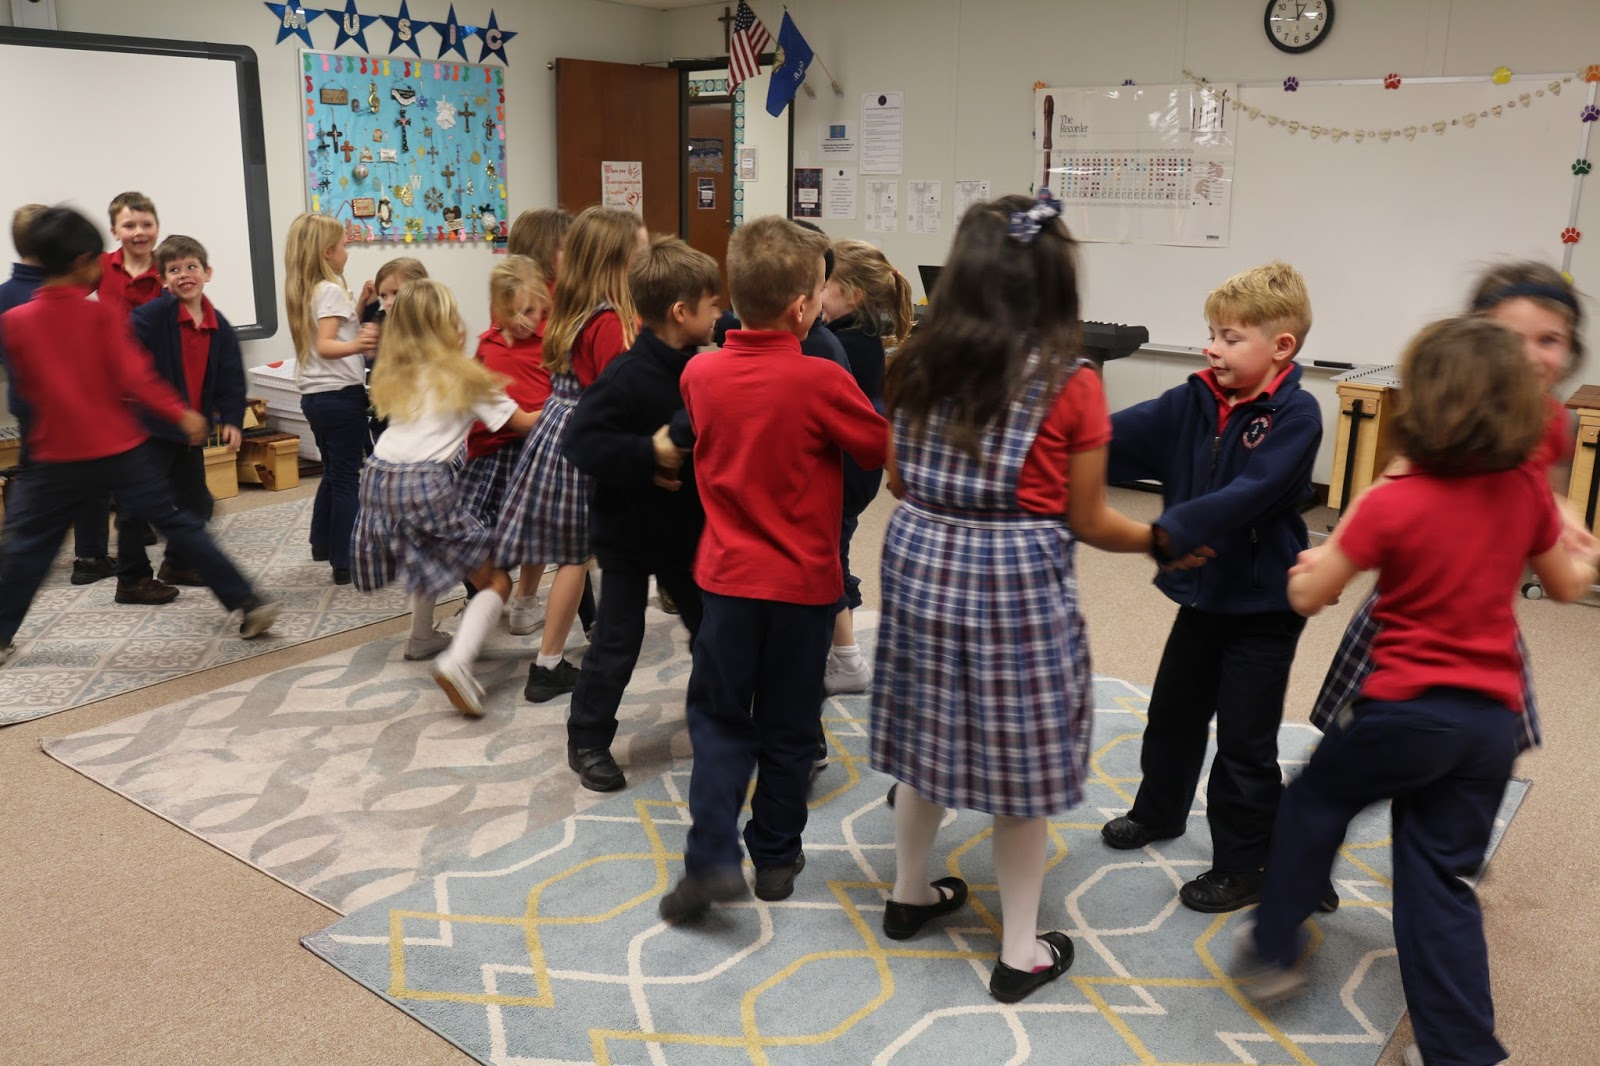 Dances for children: choose the appropriate direction